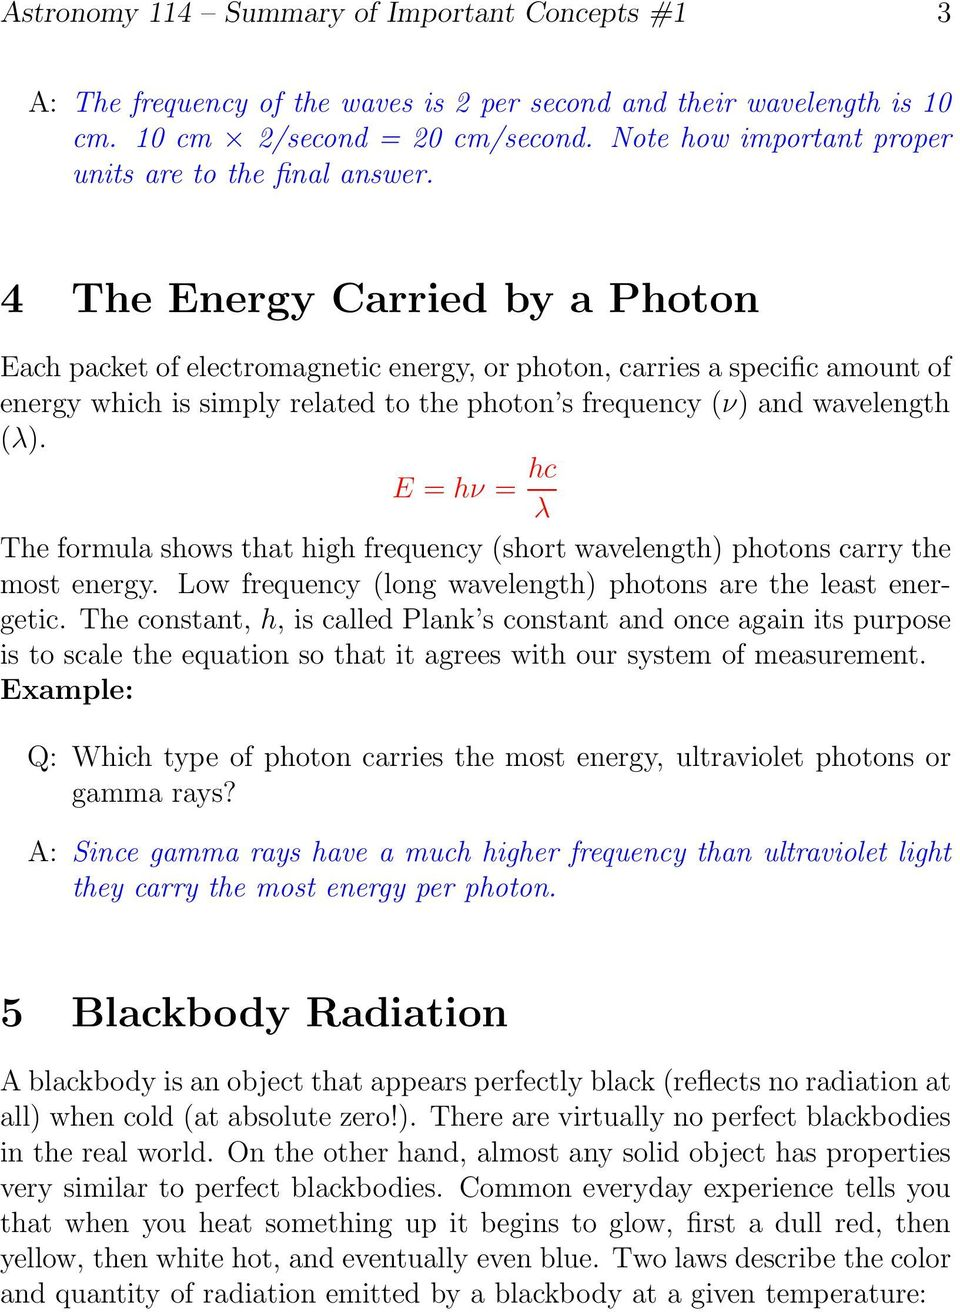 4 The Energy Carried by a Photon Each packet of electromagnetic energy, or photon, carries a specific amount of energy which is simply related to the photon s frequency (ν) and wavelength (λ).